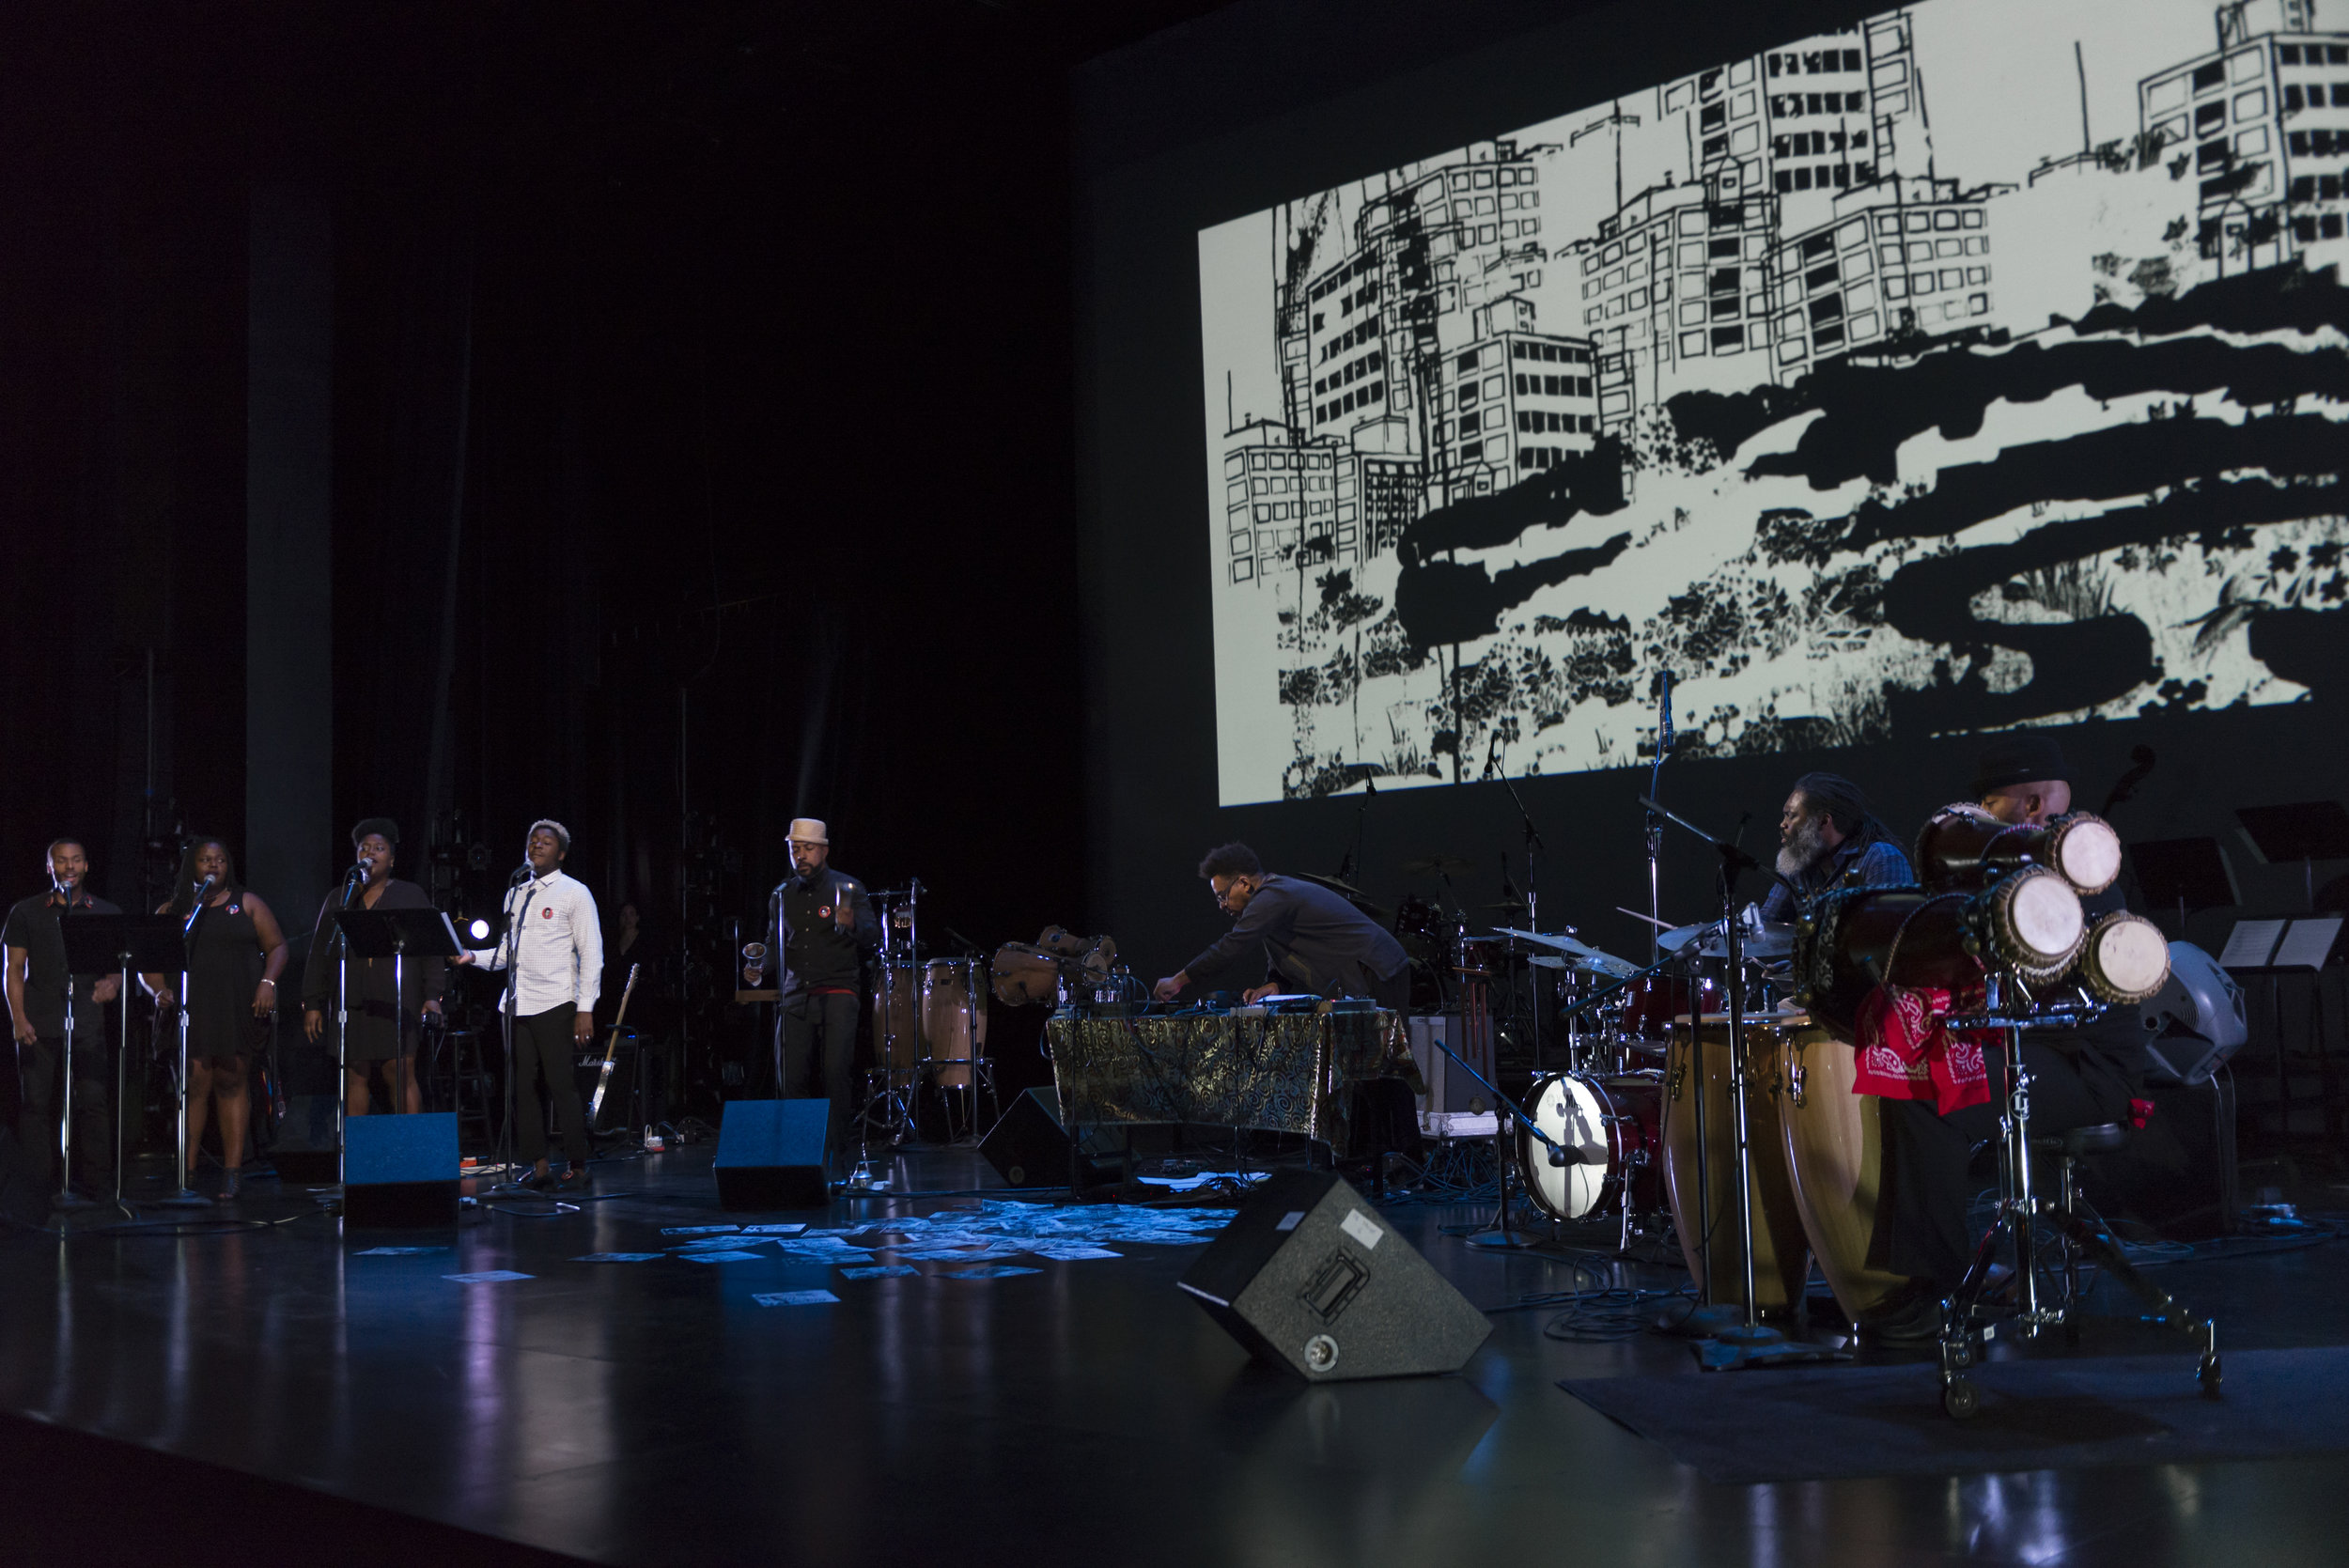 Damon Locks (center) at the helm of the Black Monument Ensemble during their performance at the Museum of Contemporary Art  Credit: Nathan Keay